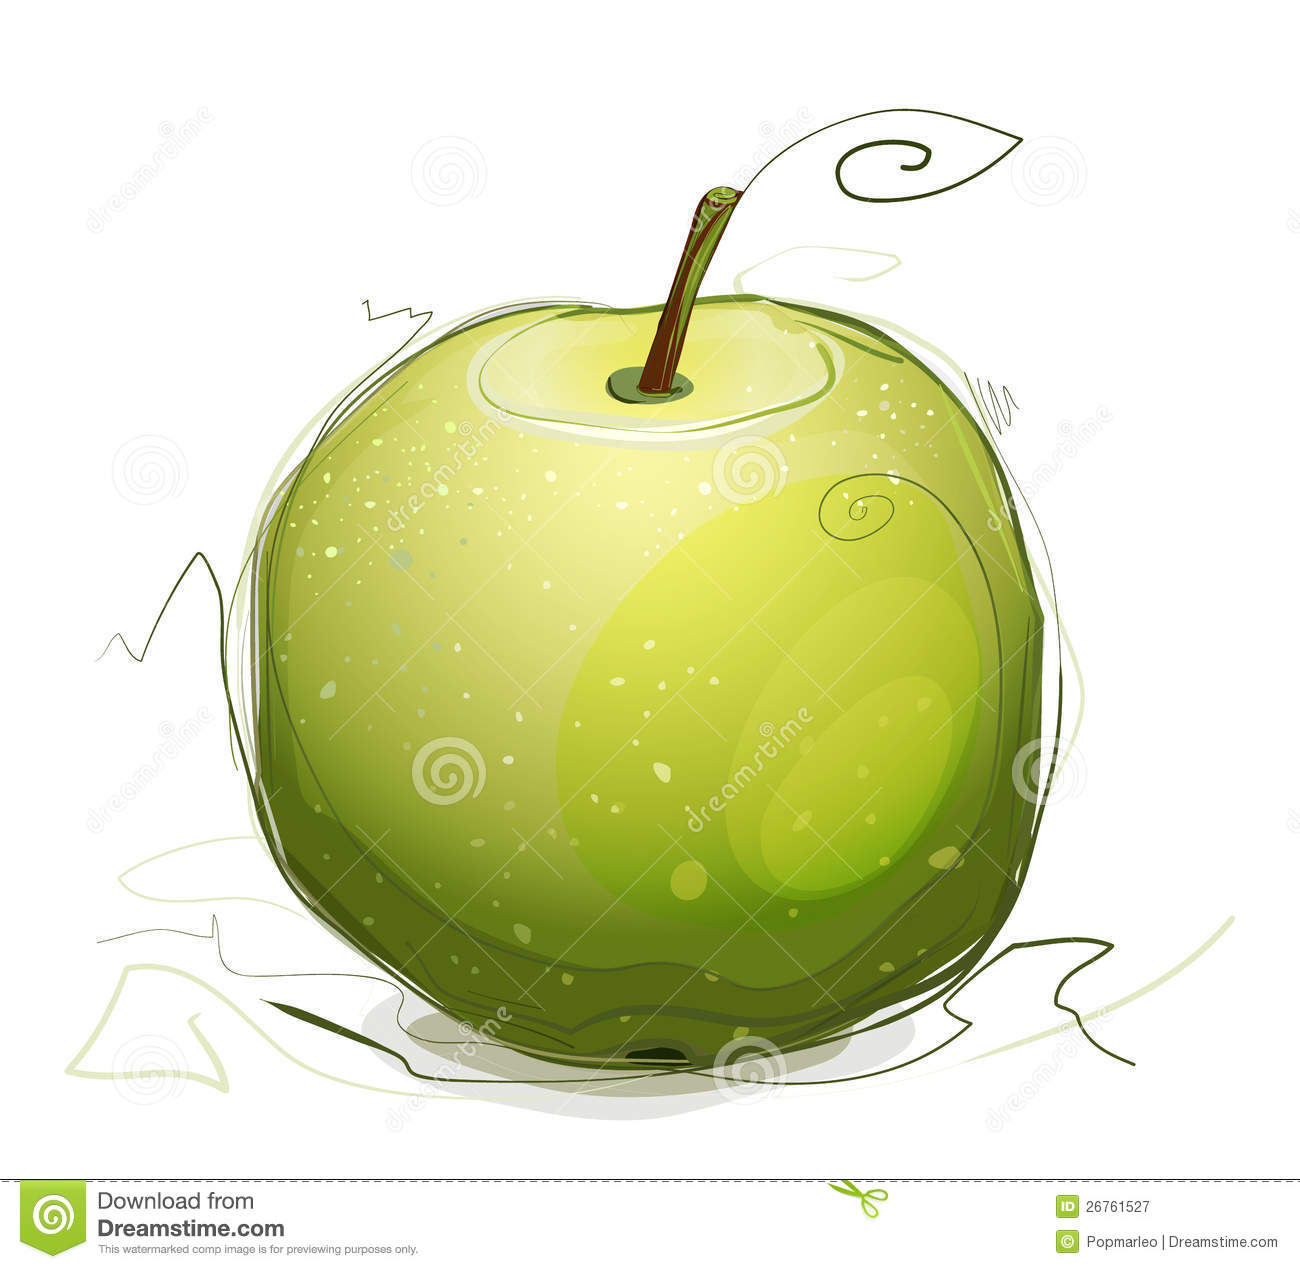 delicious green apple illustration - photo #6